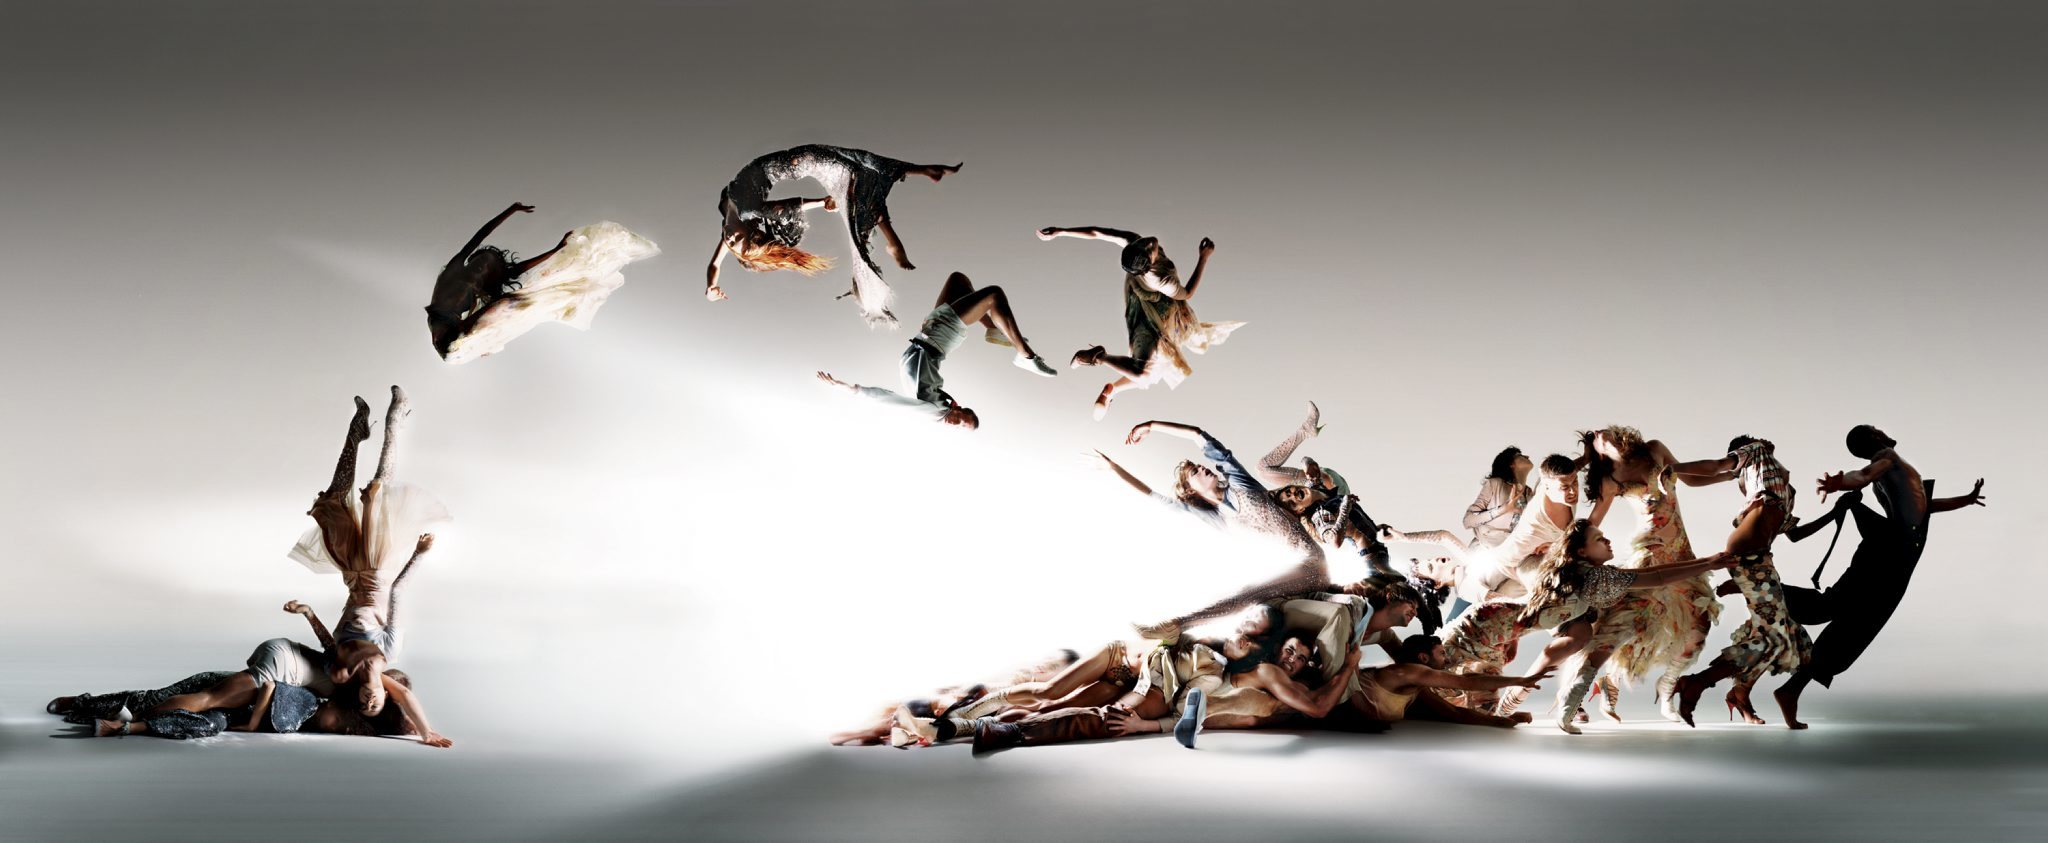 Blade of Light - Nick Knight